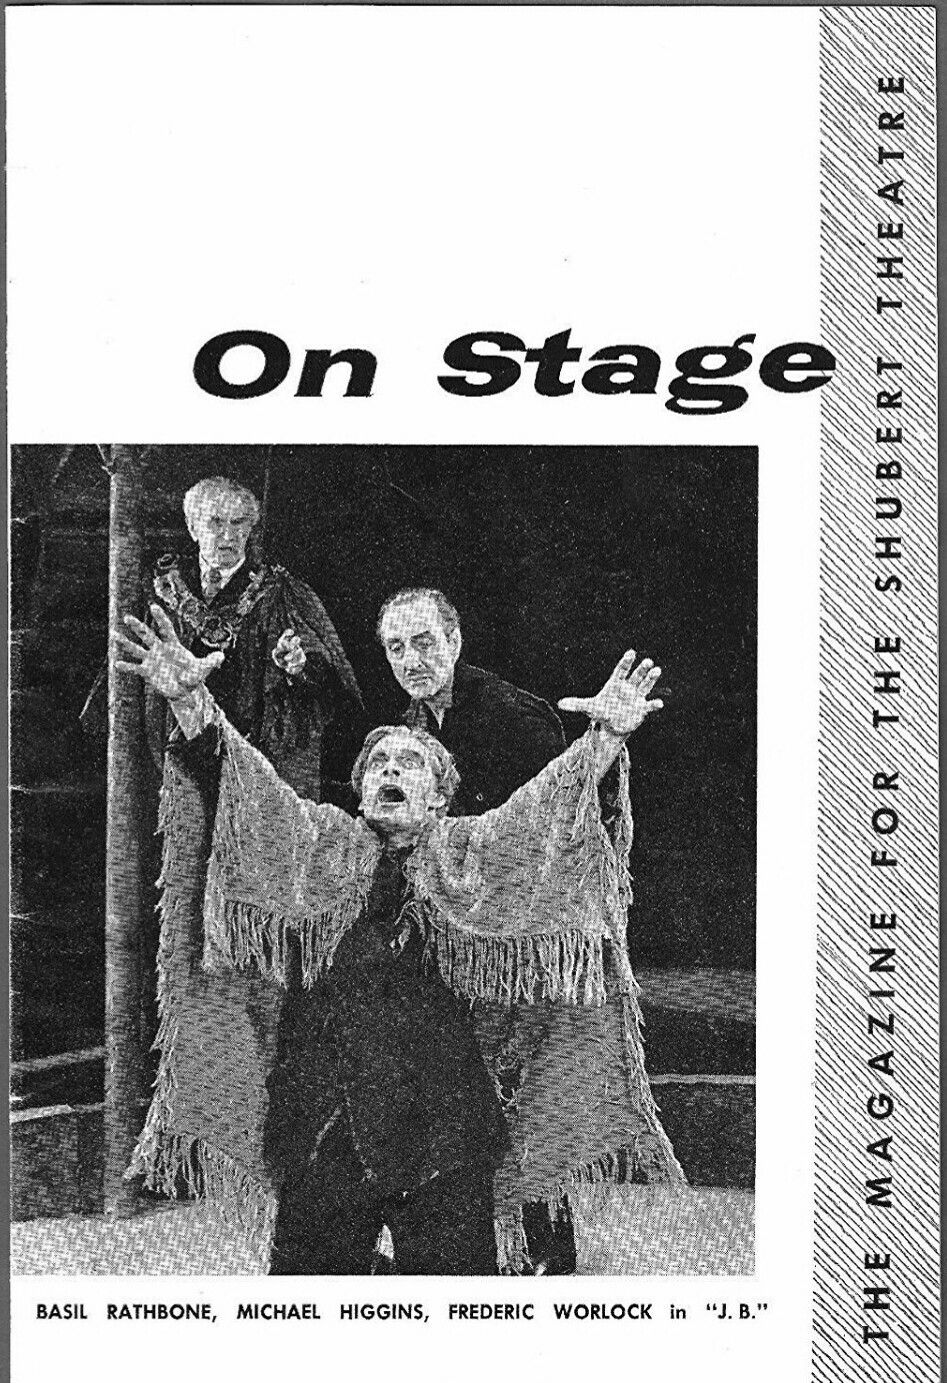 Theatre Programme From The Premiere Detroit Production Of Pulitzer Prize Winning Archibald Macleish Play